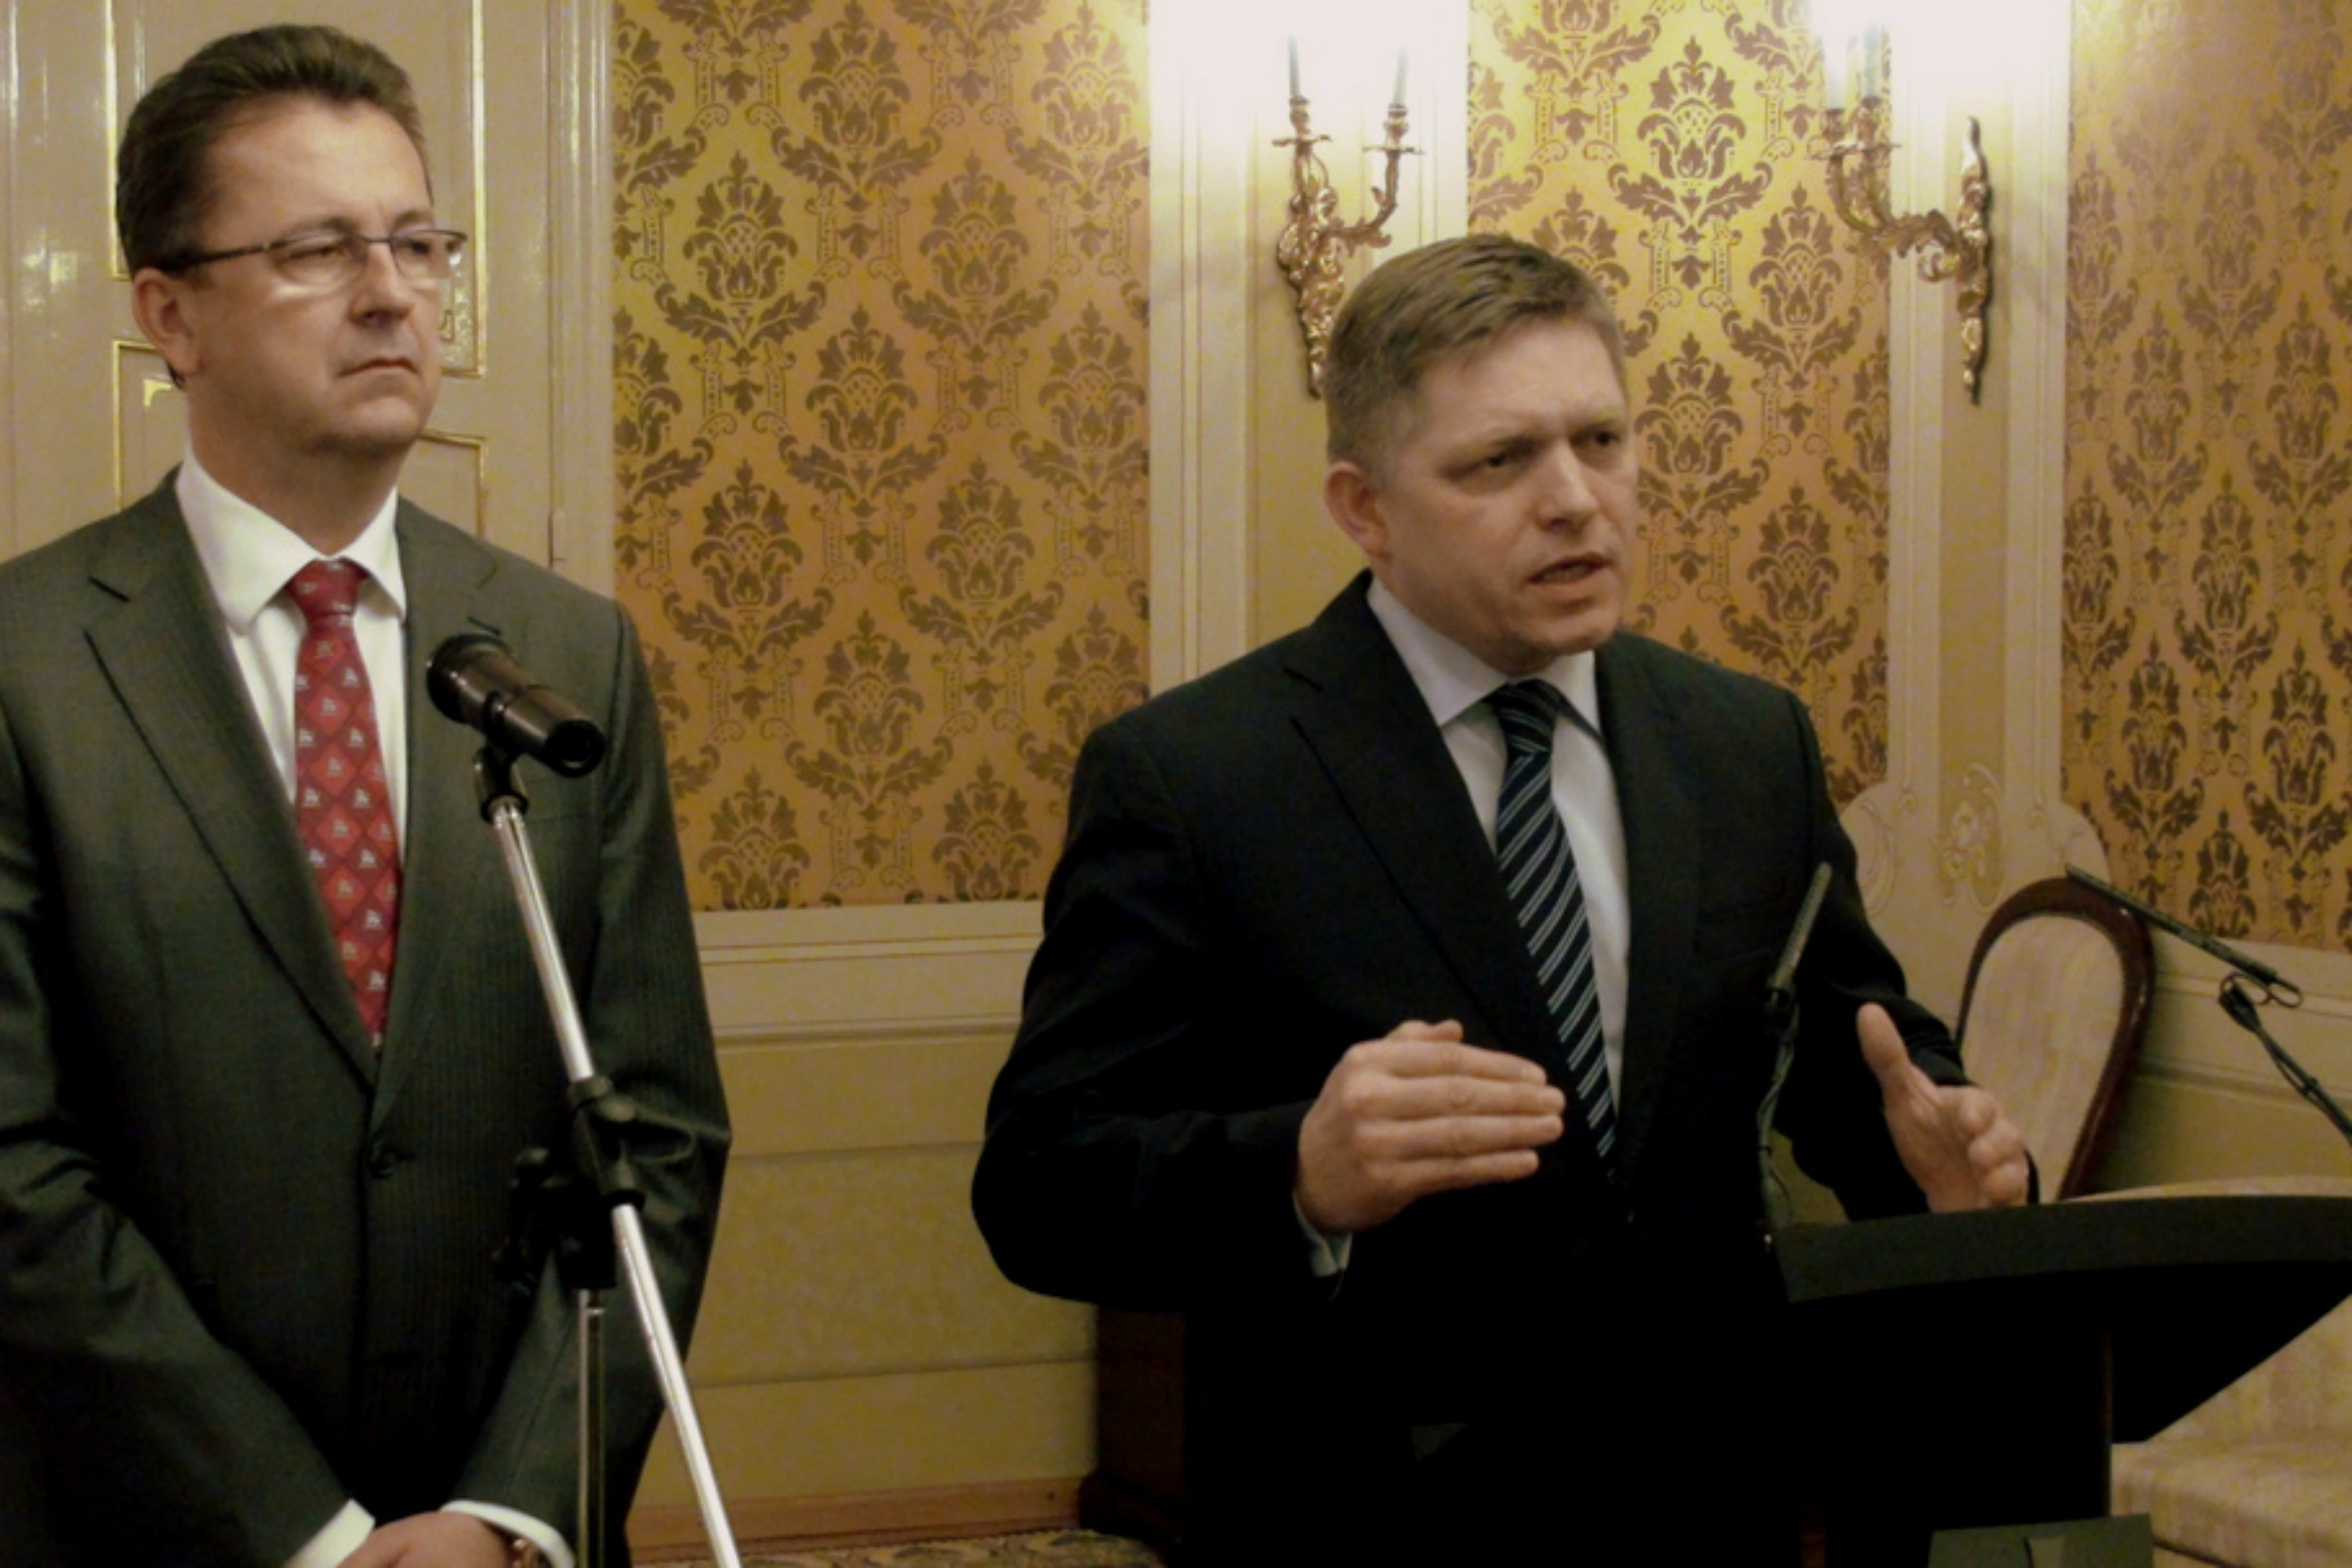 Robert Fico (right) Photo Slovak government